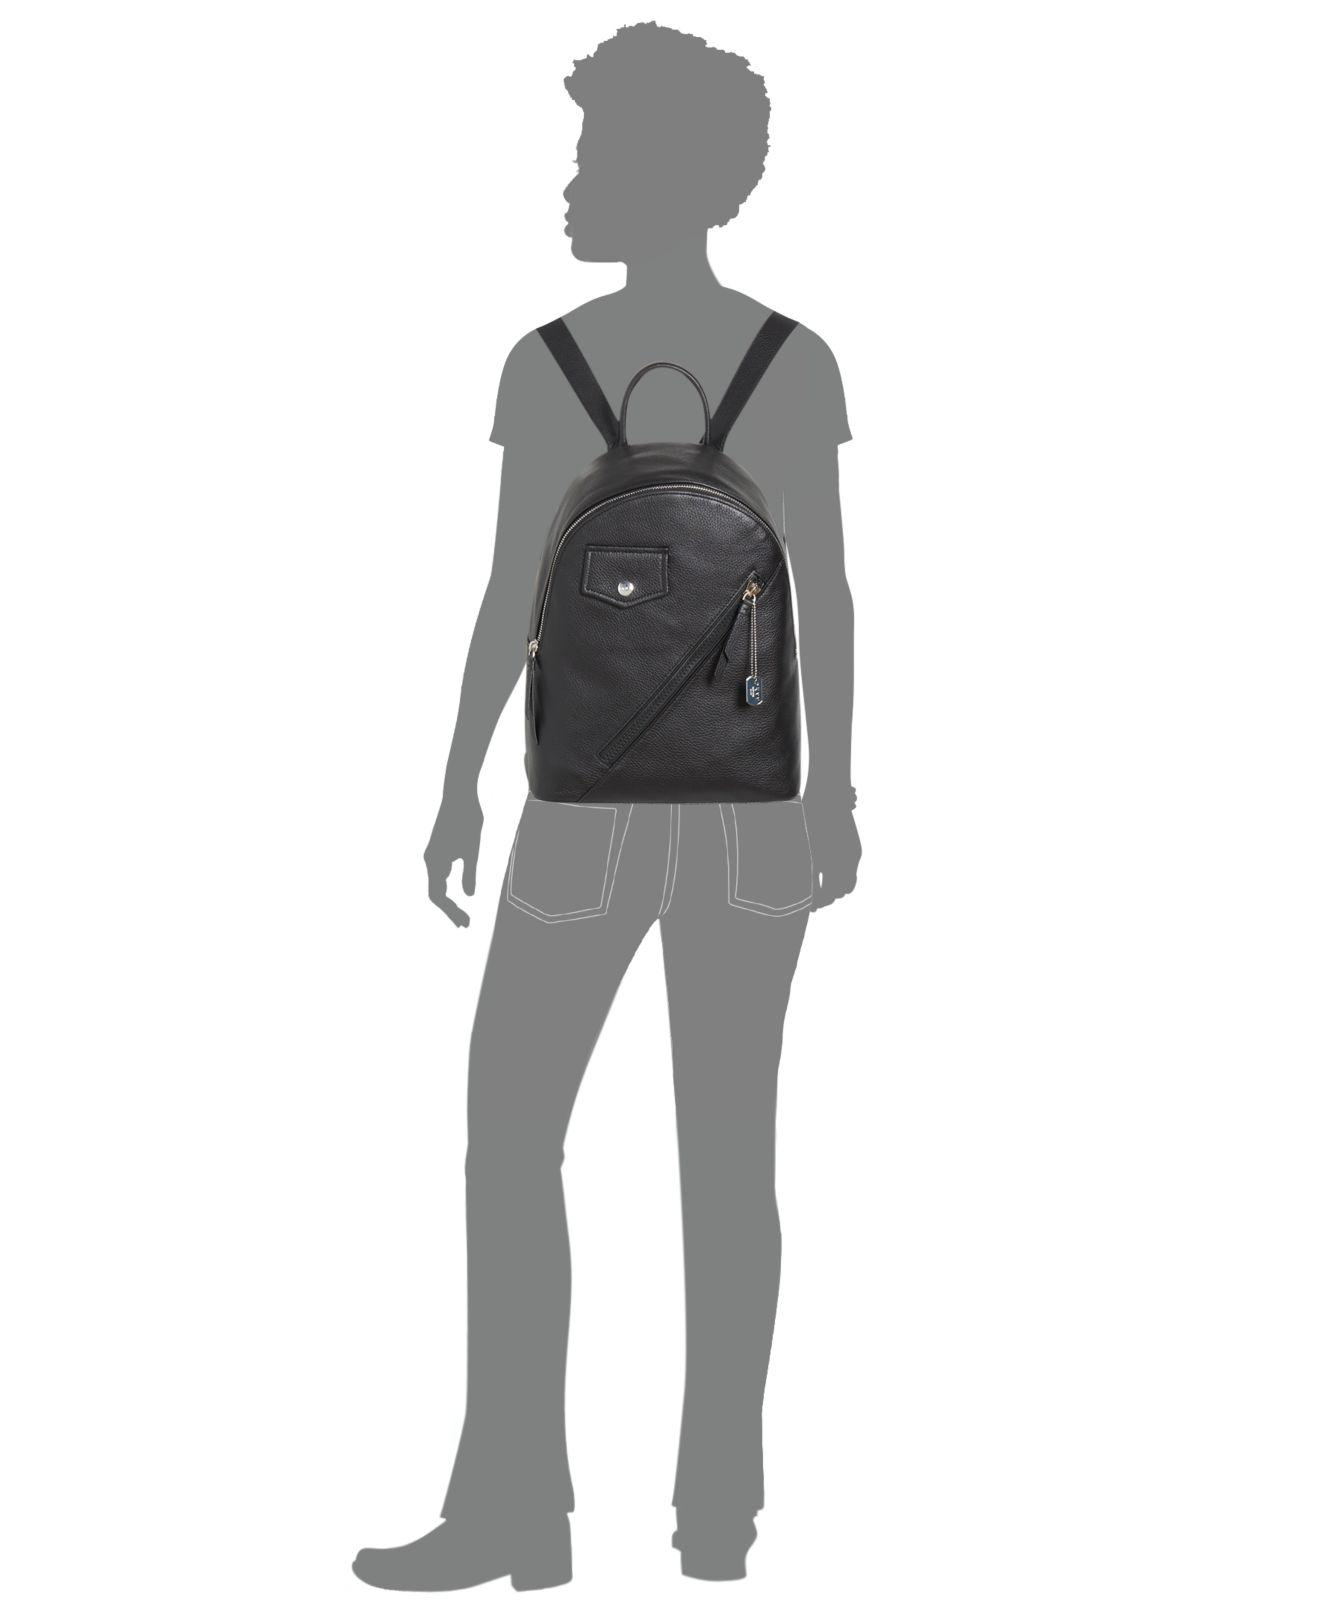 aa5daba63 DKNY Jagger Leather Backpack, Created For Macy's in Black - Lyst